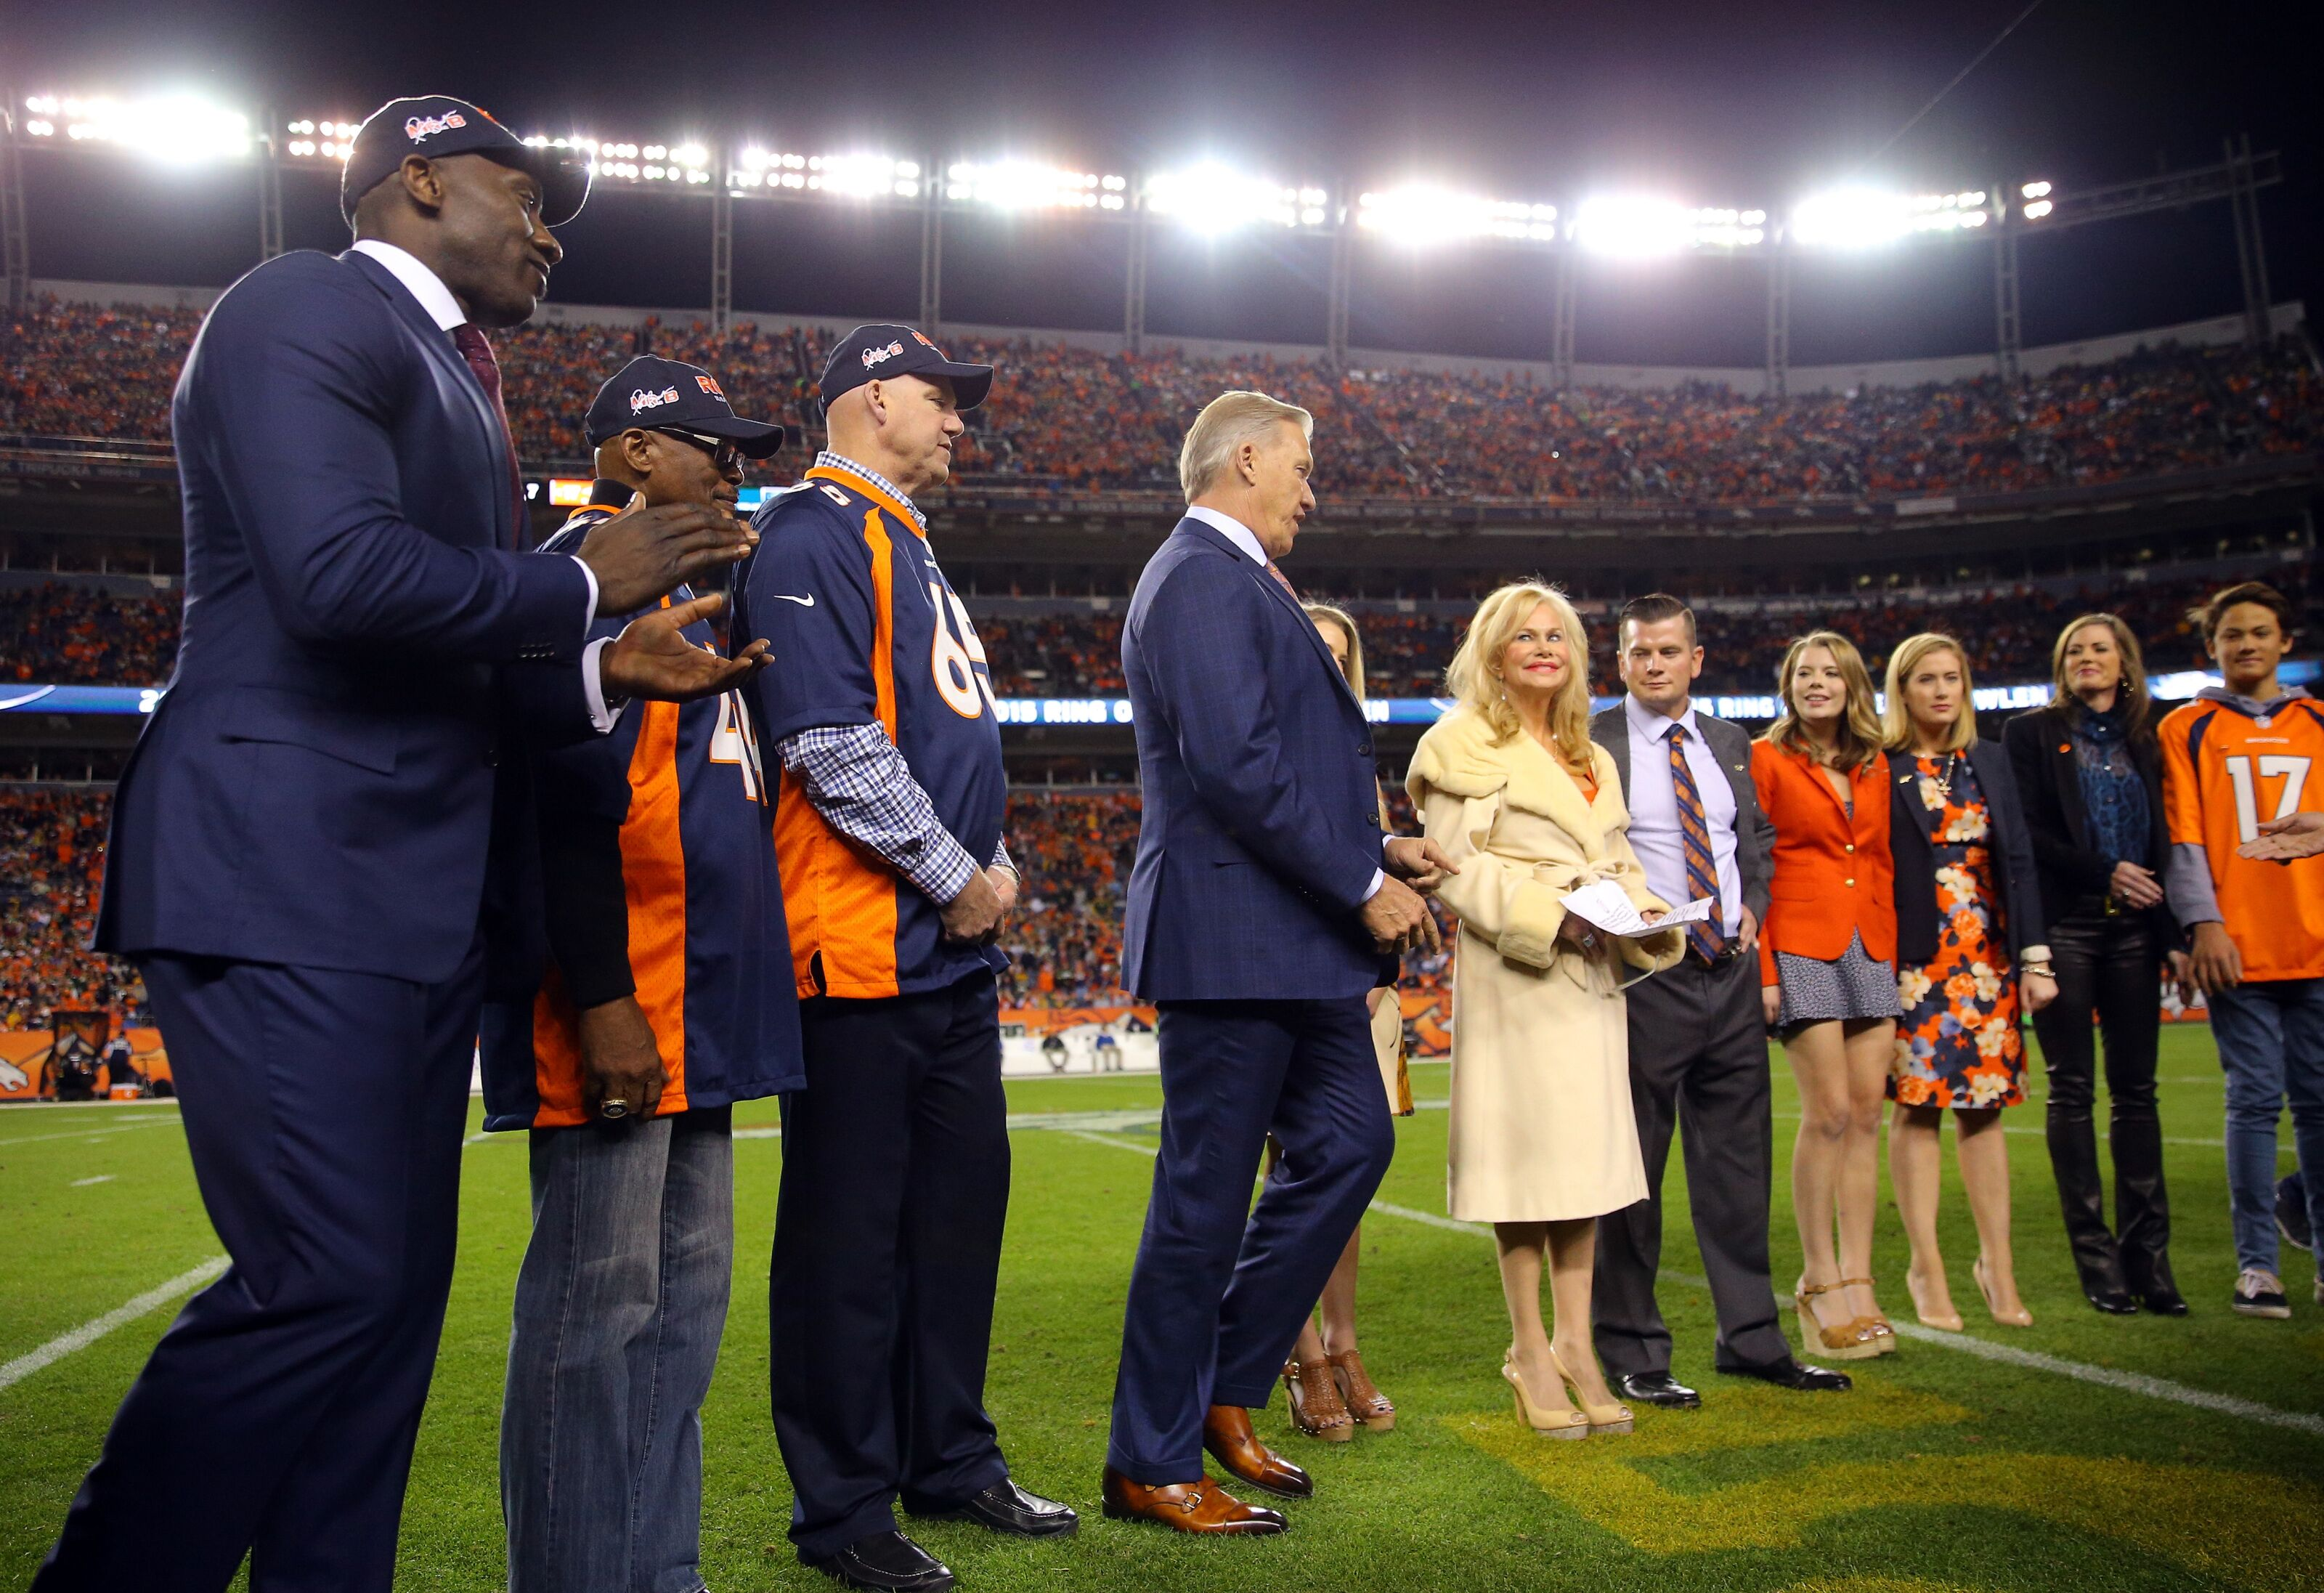 Brittany Bowlen the clear favorite as next Denver Broncos owner?